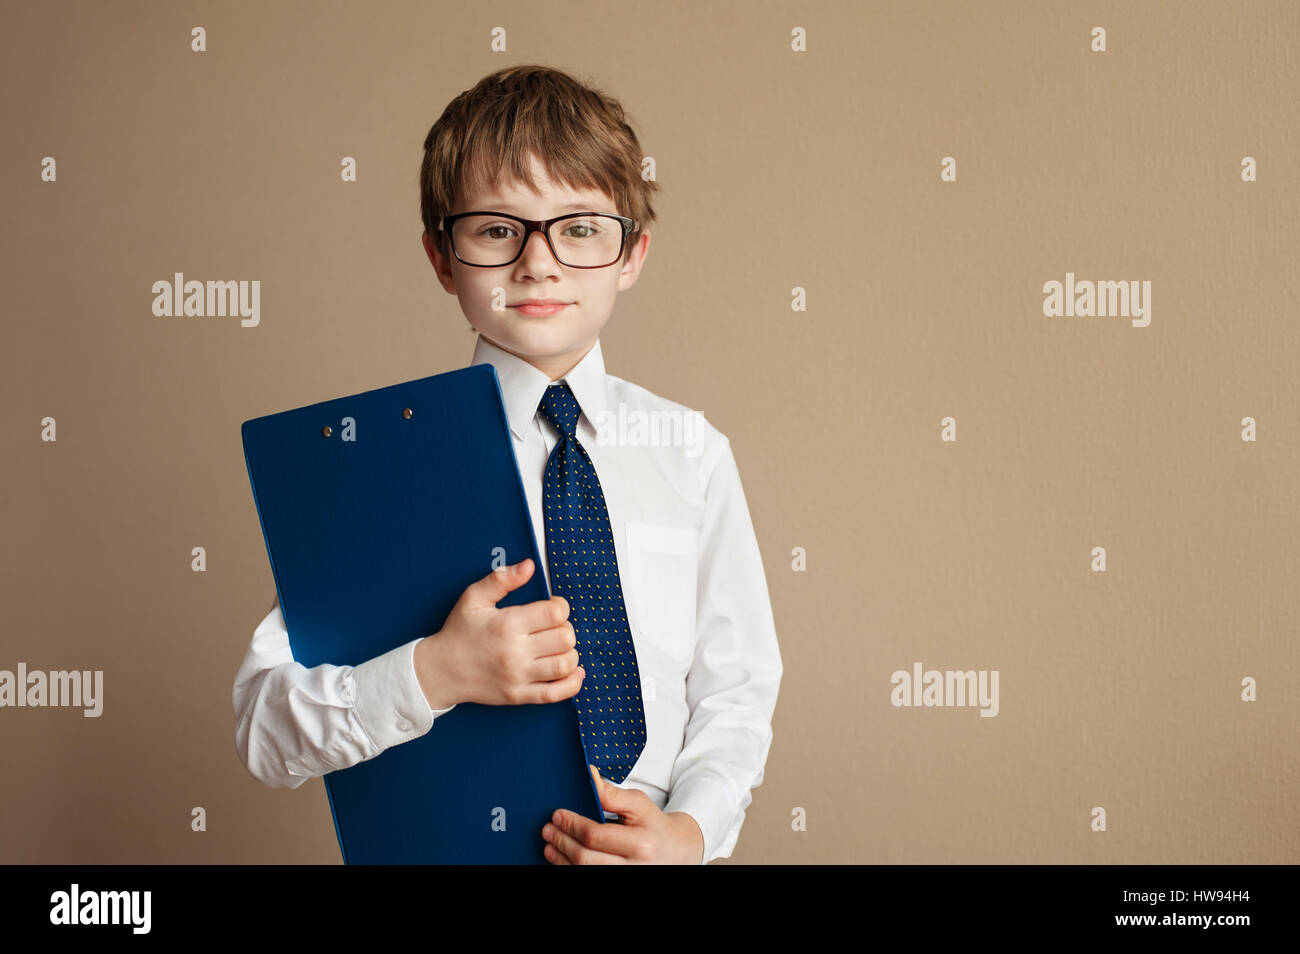 smart pic of boy